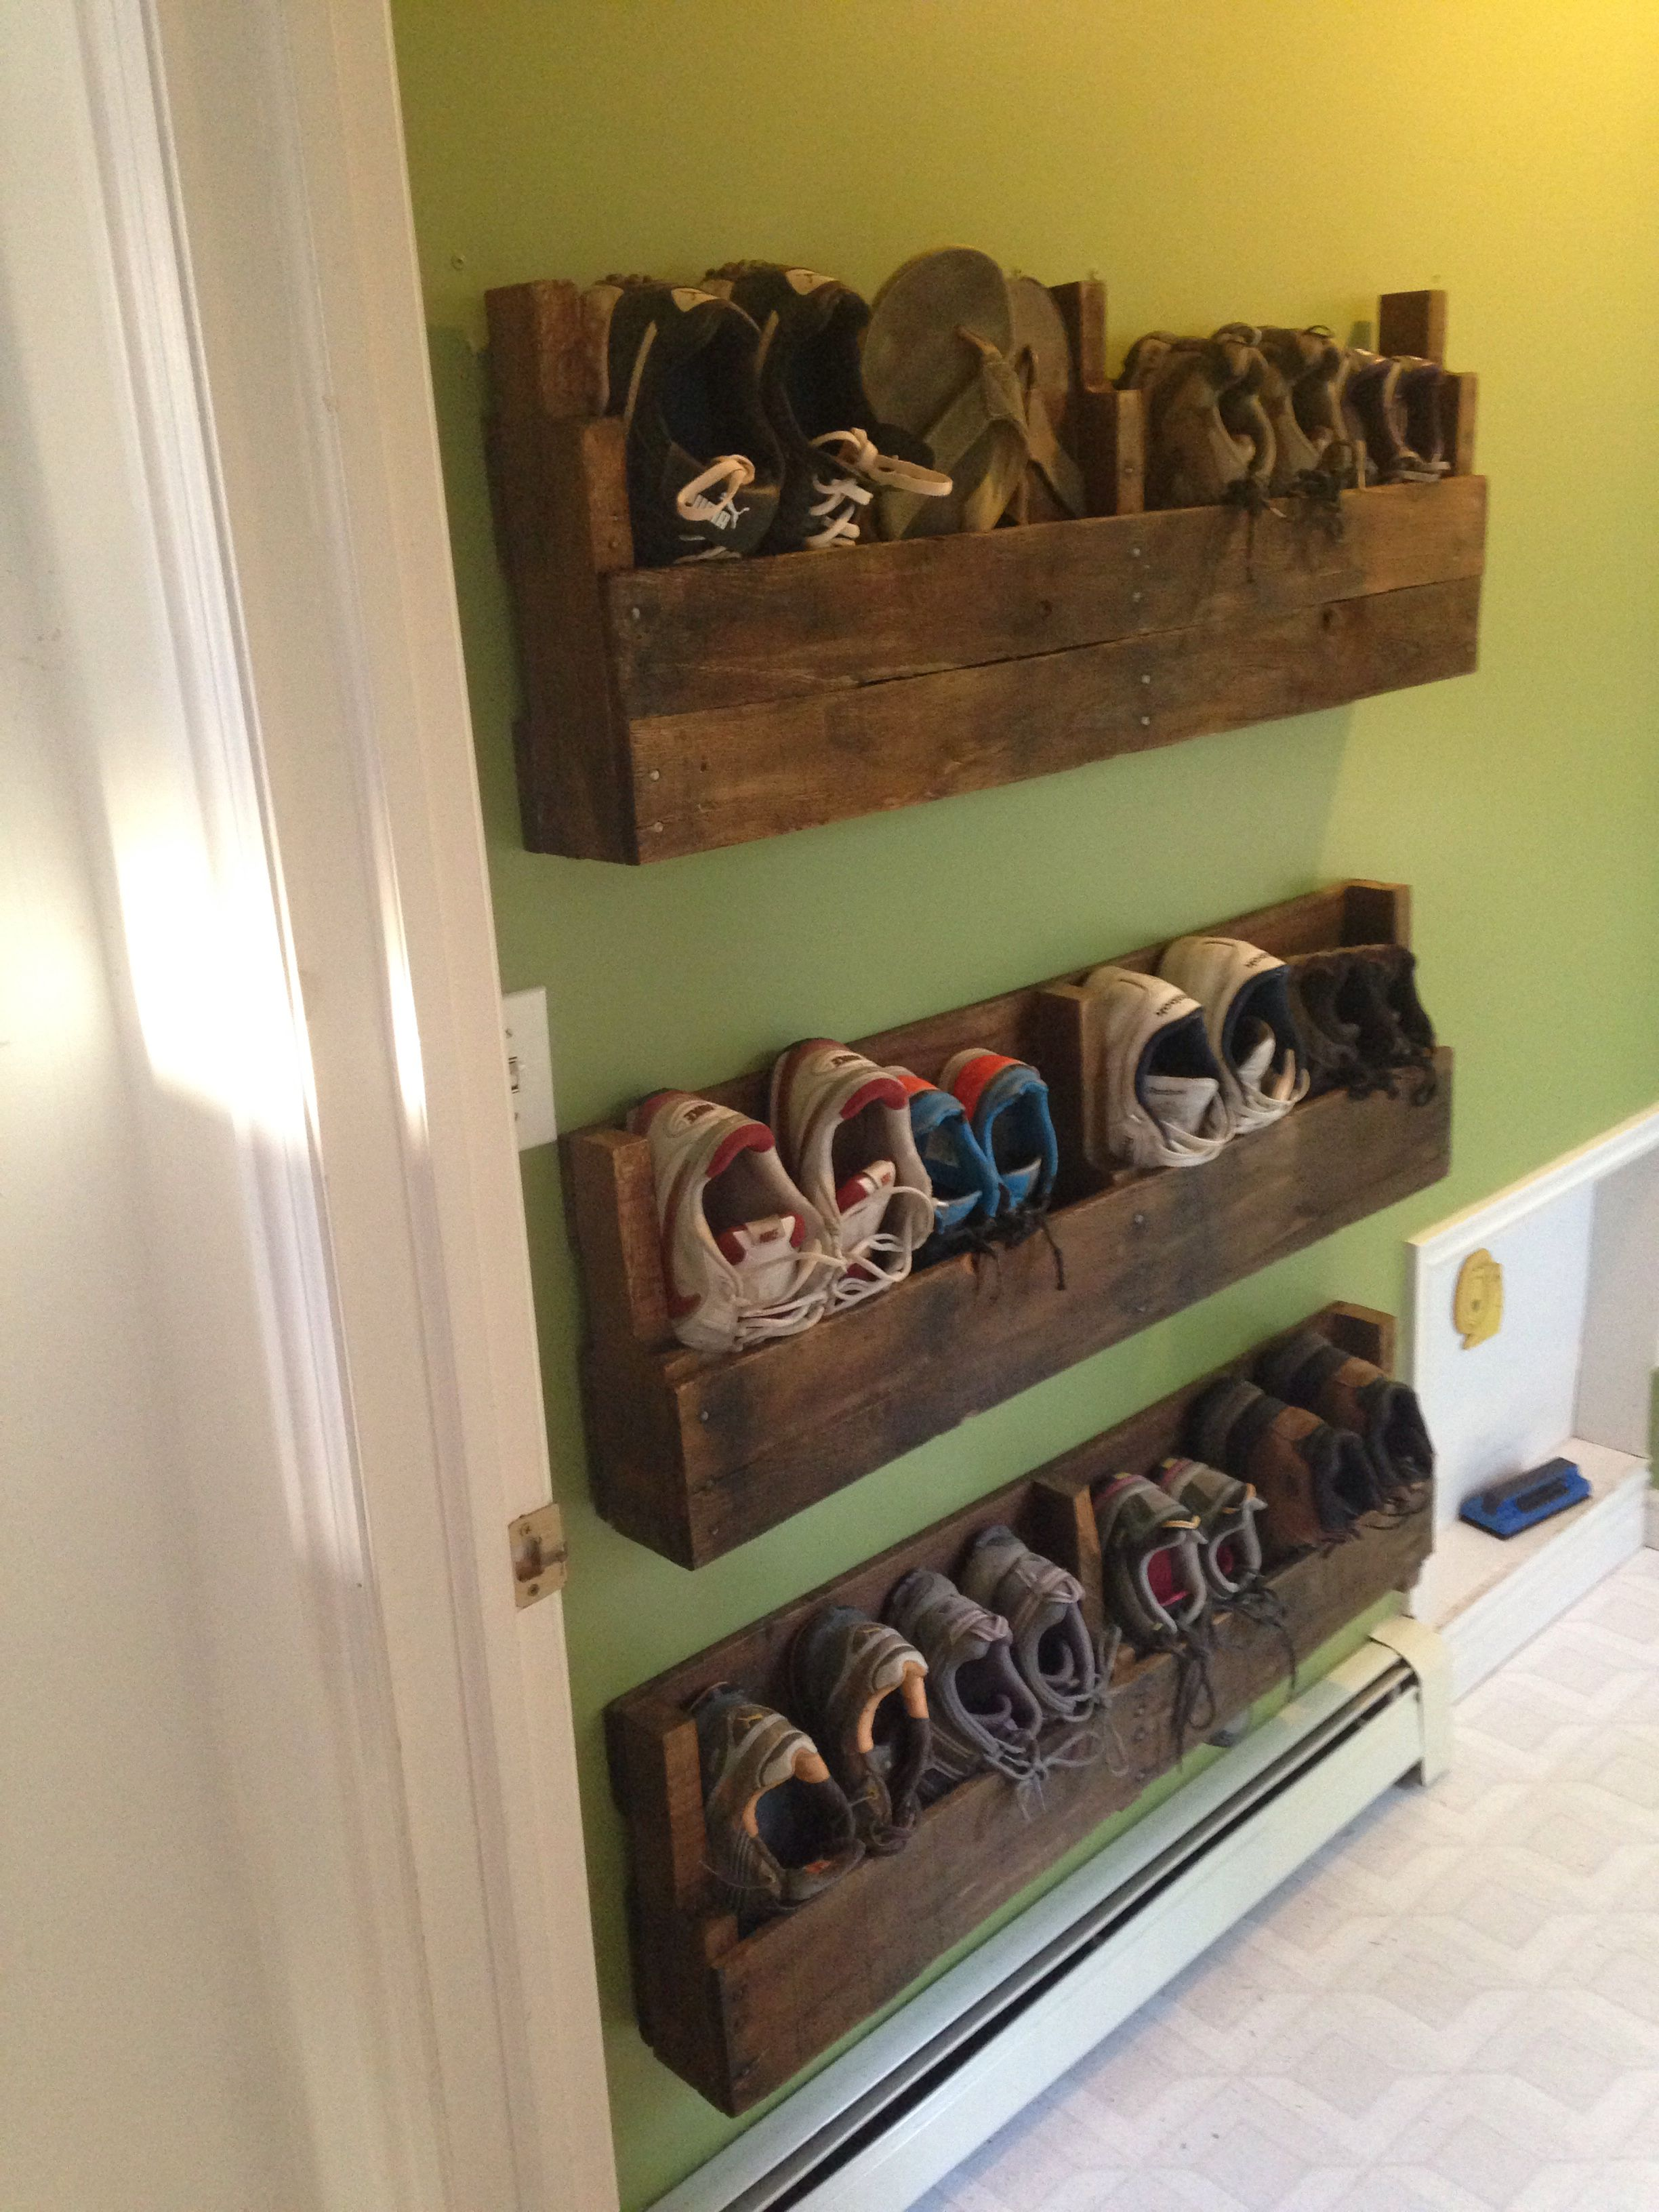 30 shoe storage ideas for small spaces shoe rack pallet projects 30 shoe storage ideas for small spaces solutioingenieria Image collections